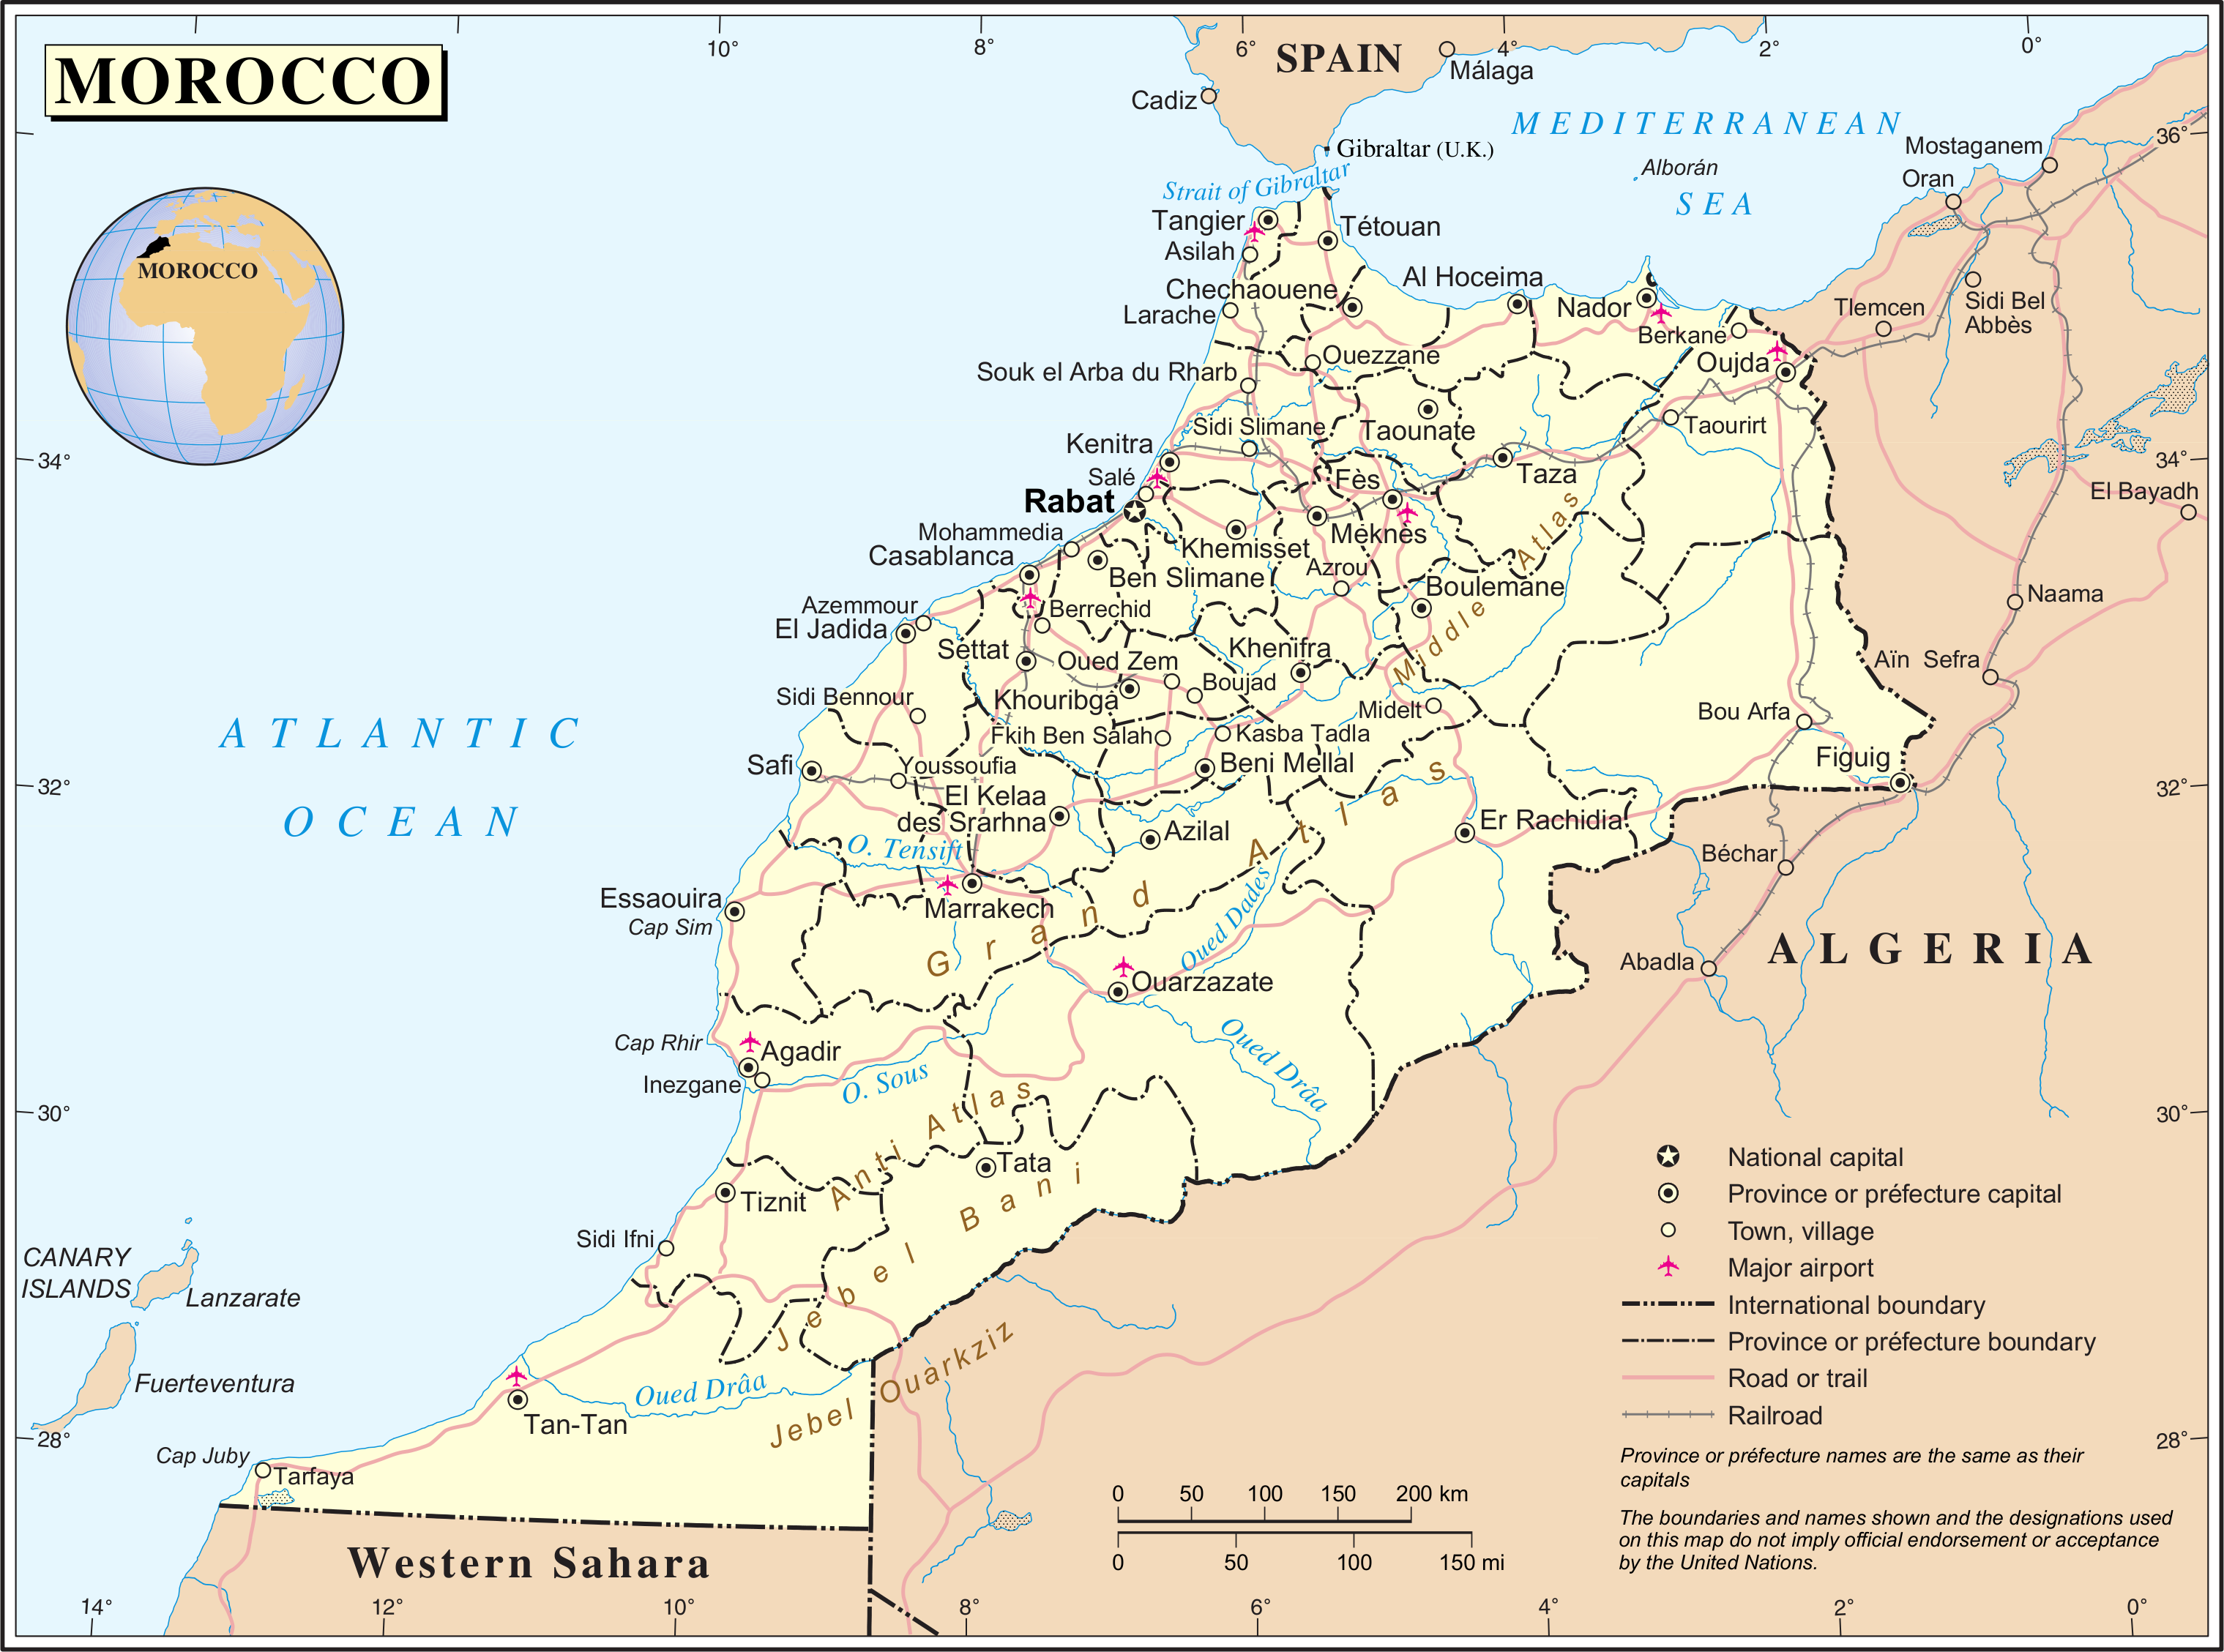 FileUnmoroccopng Wikimedia Commons - Map of morocco